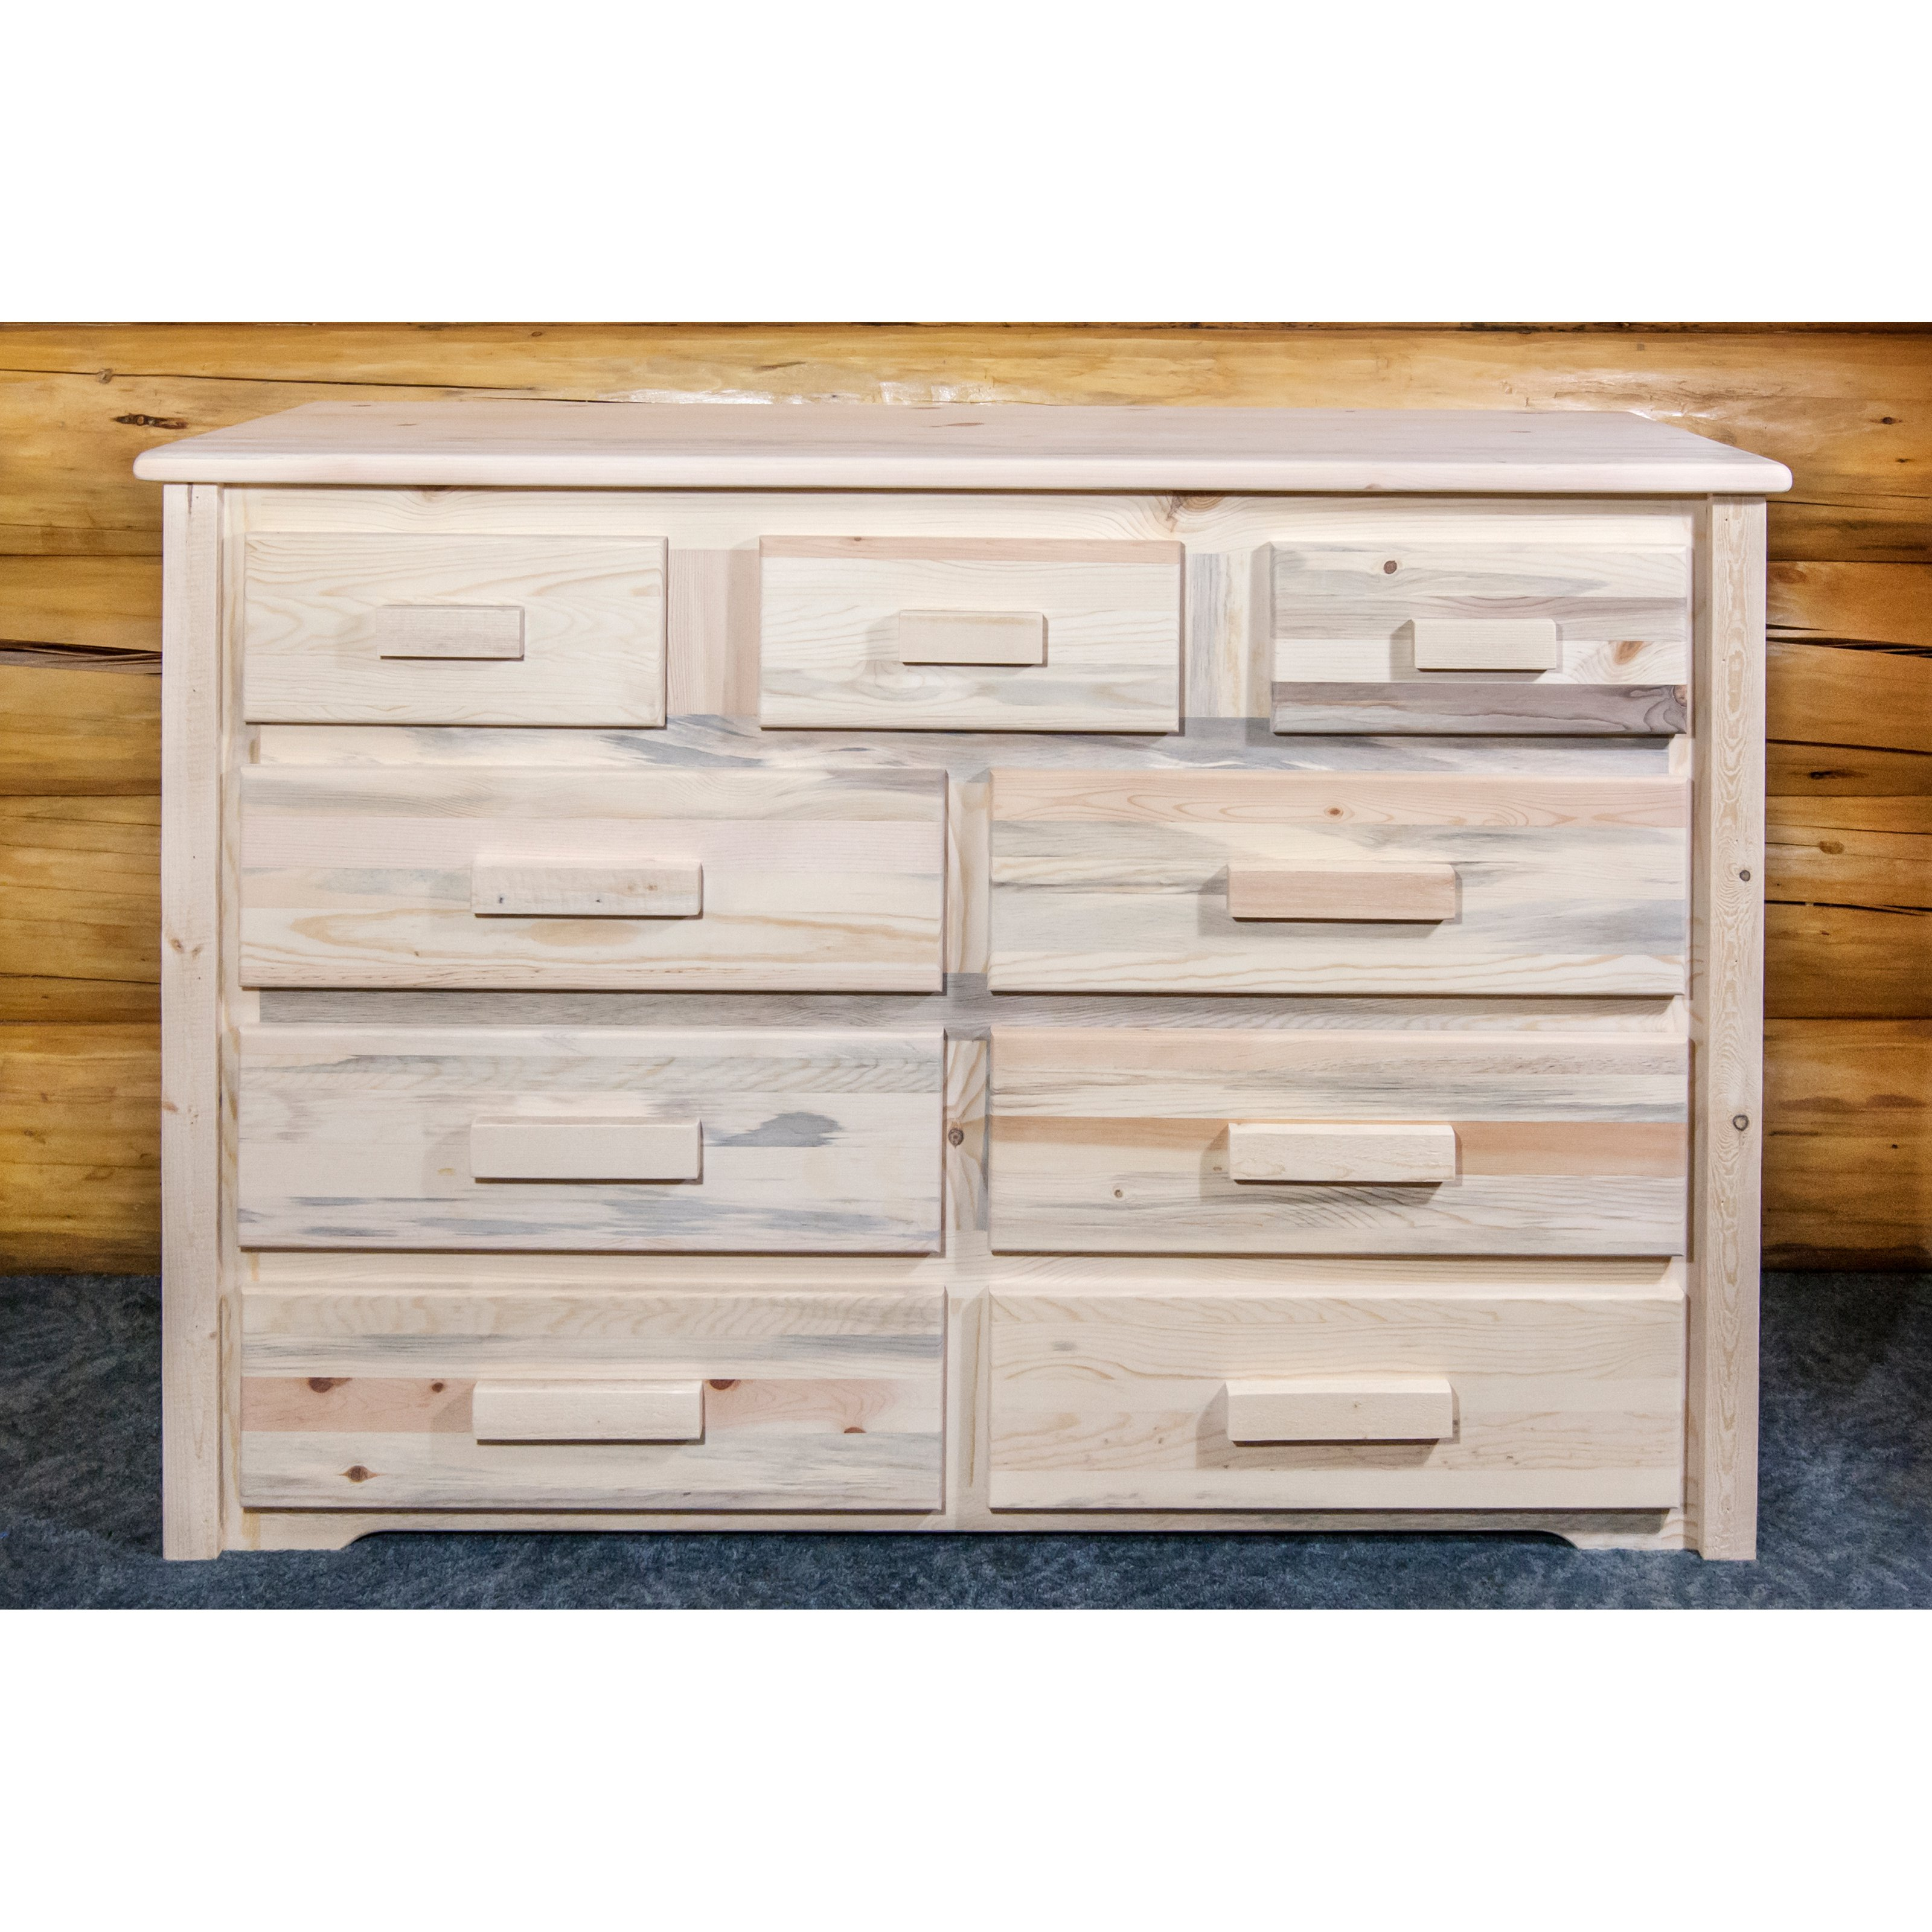 9-Drawer Dresser in Stained and Lacquered Finish